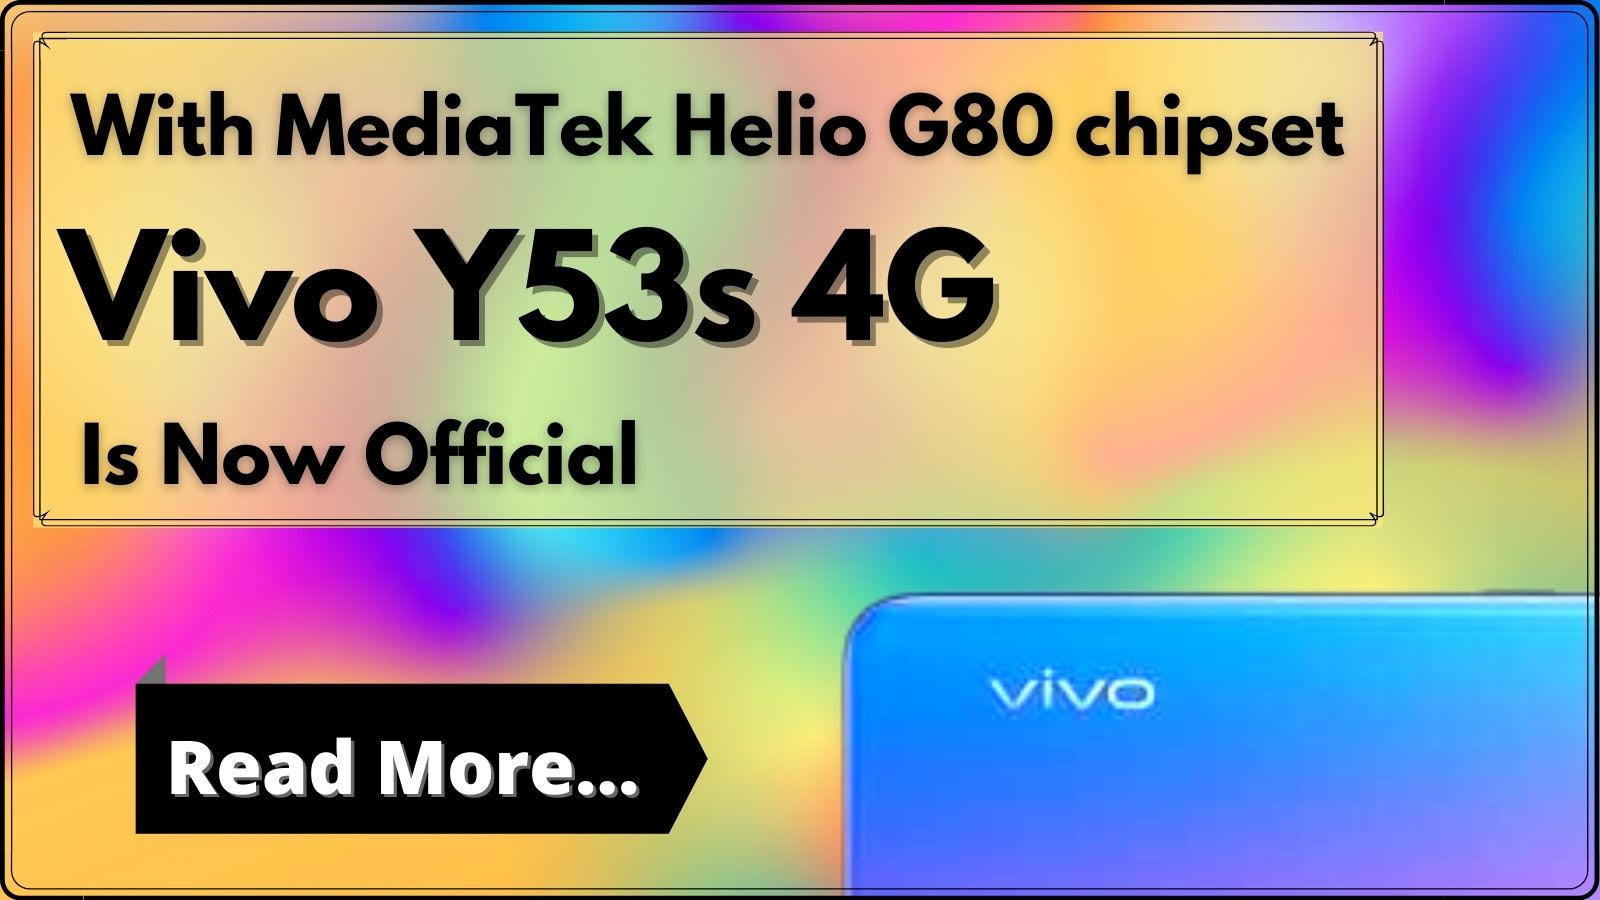 Vivo Y53s 4G Is Now Official